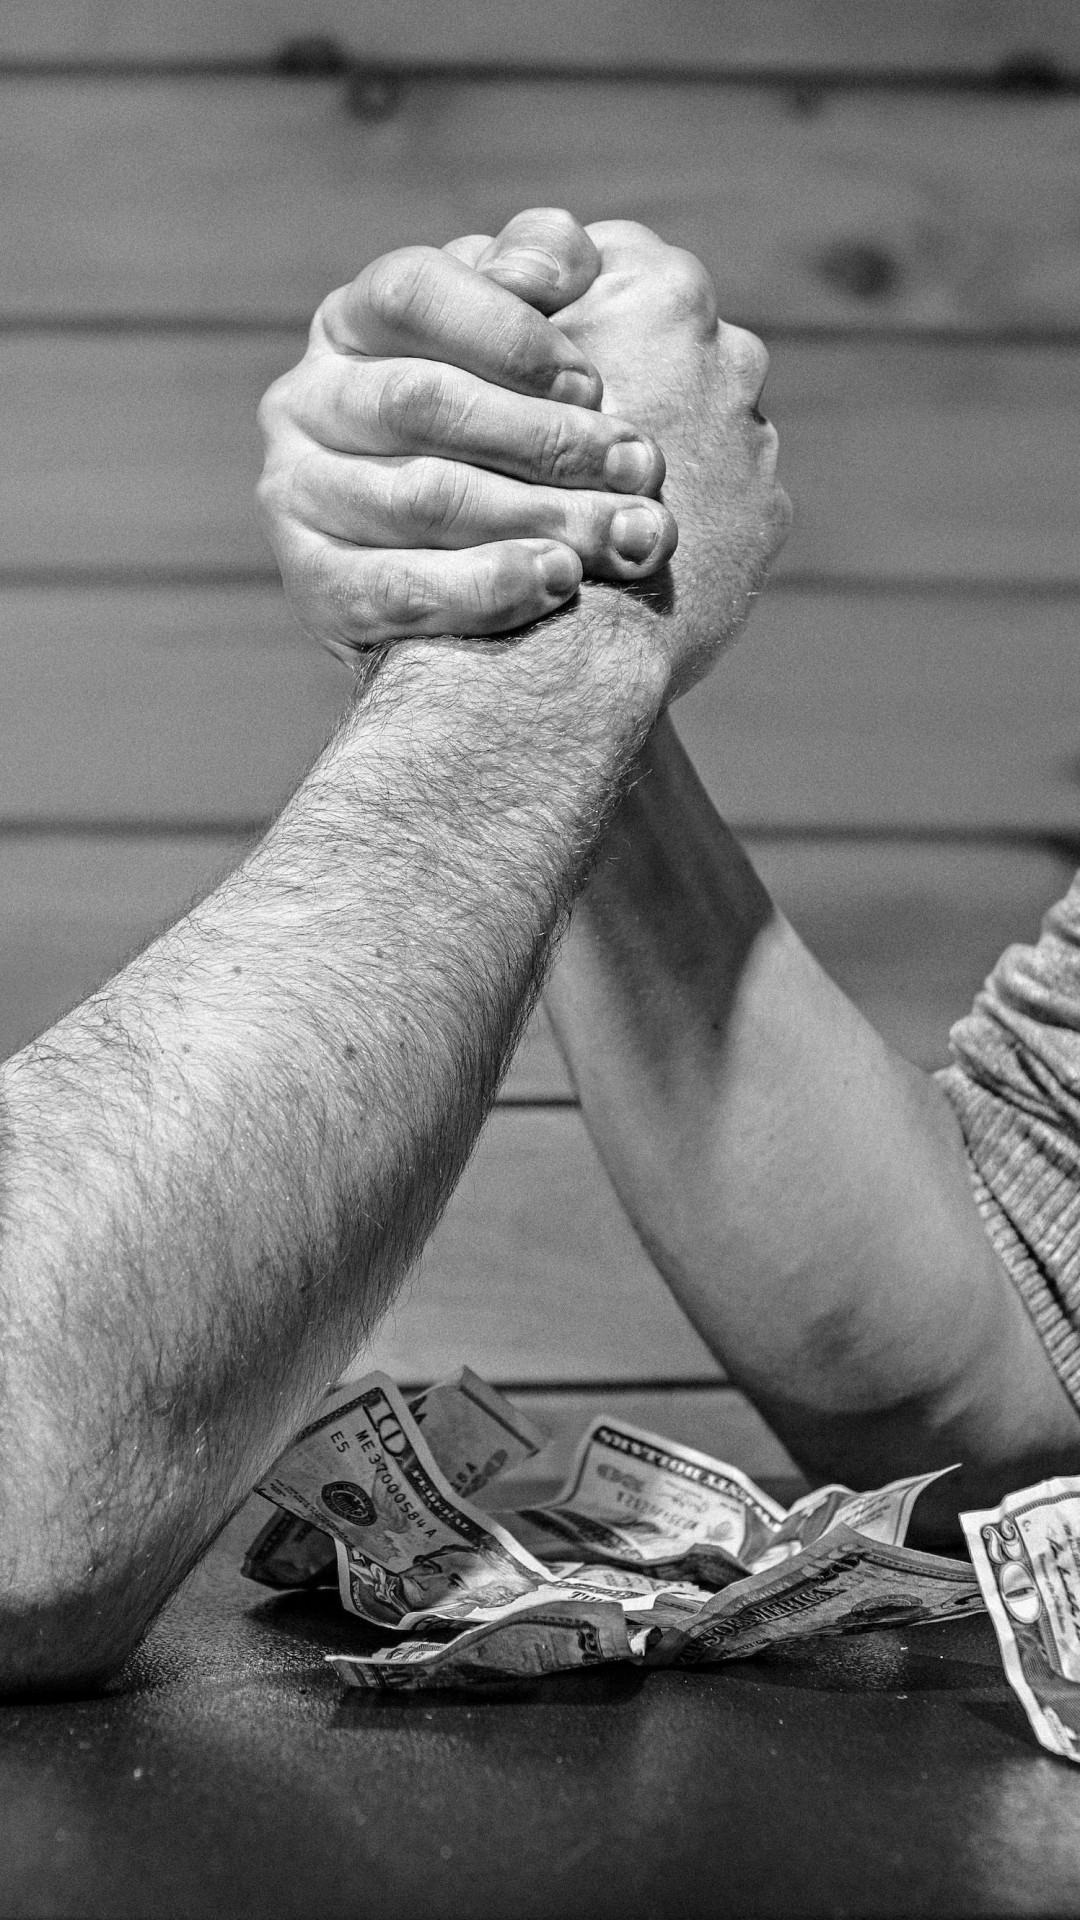 Arm Wrestling Wallpaper for SAMSUNG Galaxy S4